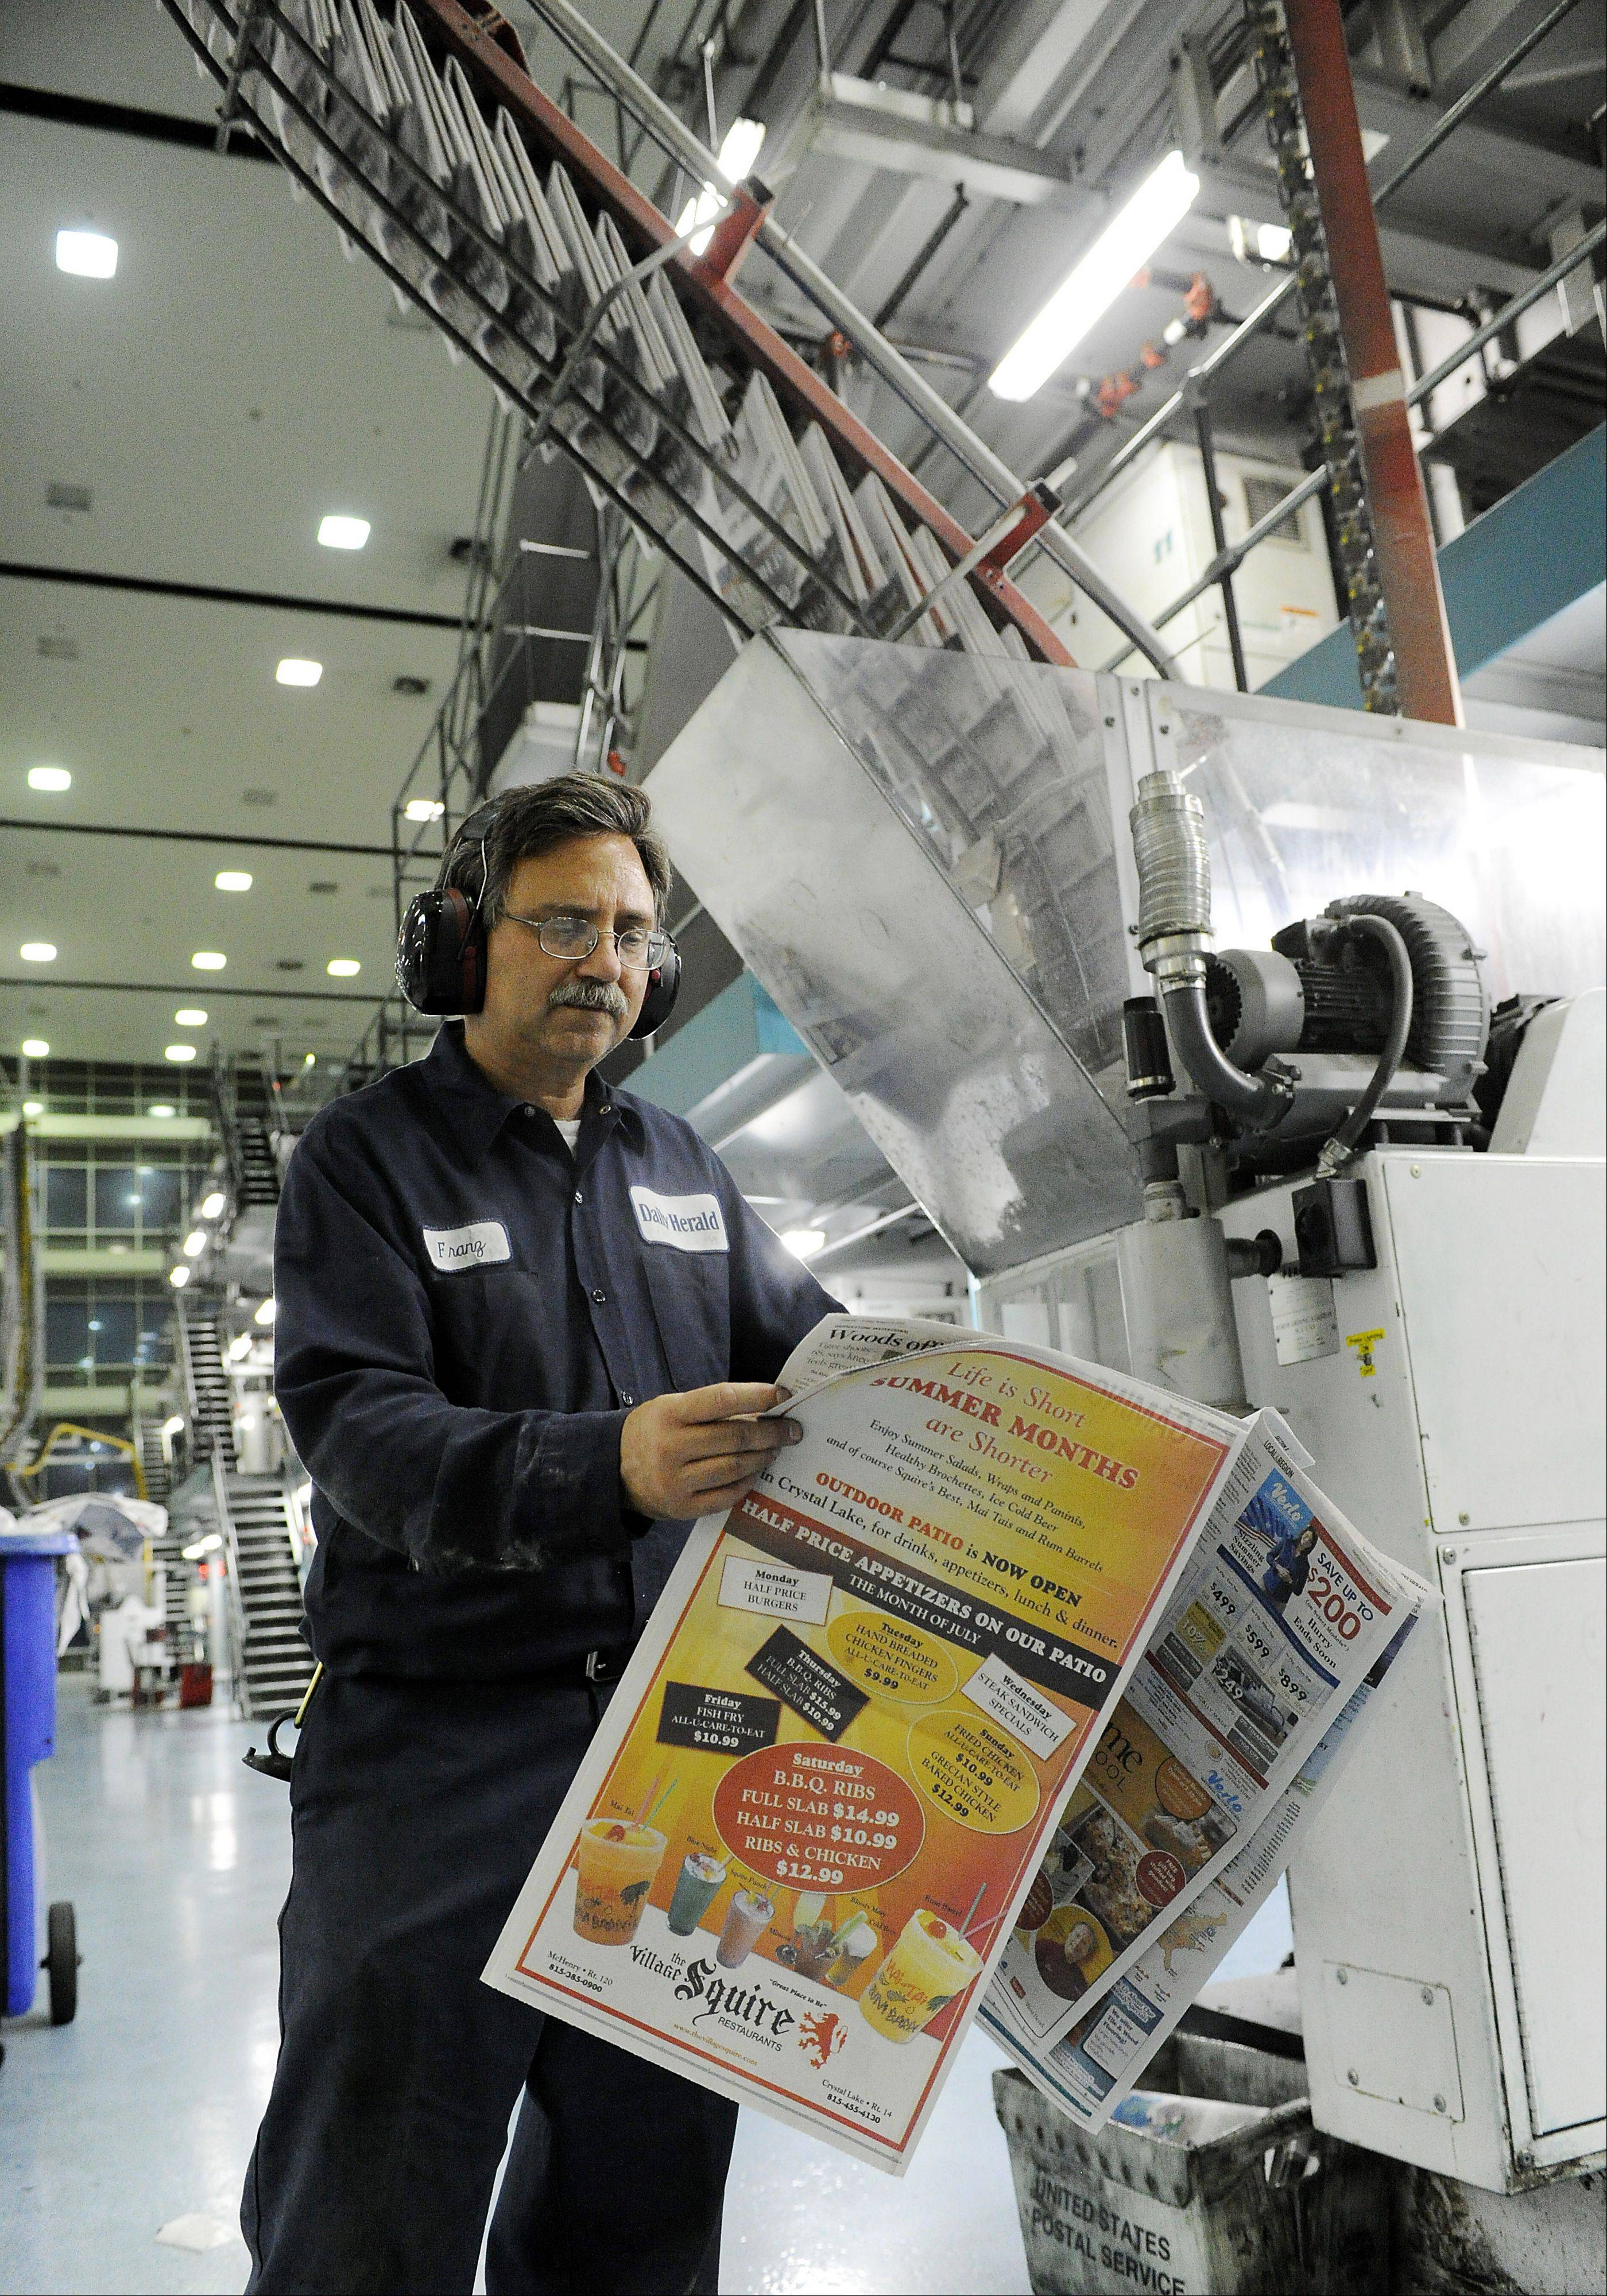 Pressman Franz Sinkovits inspects the Daily Herald for color, registration errors and overall quality.